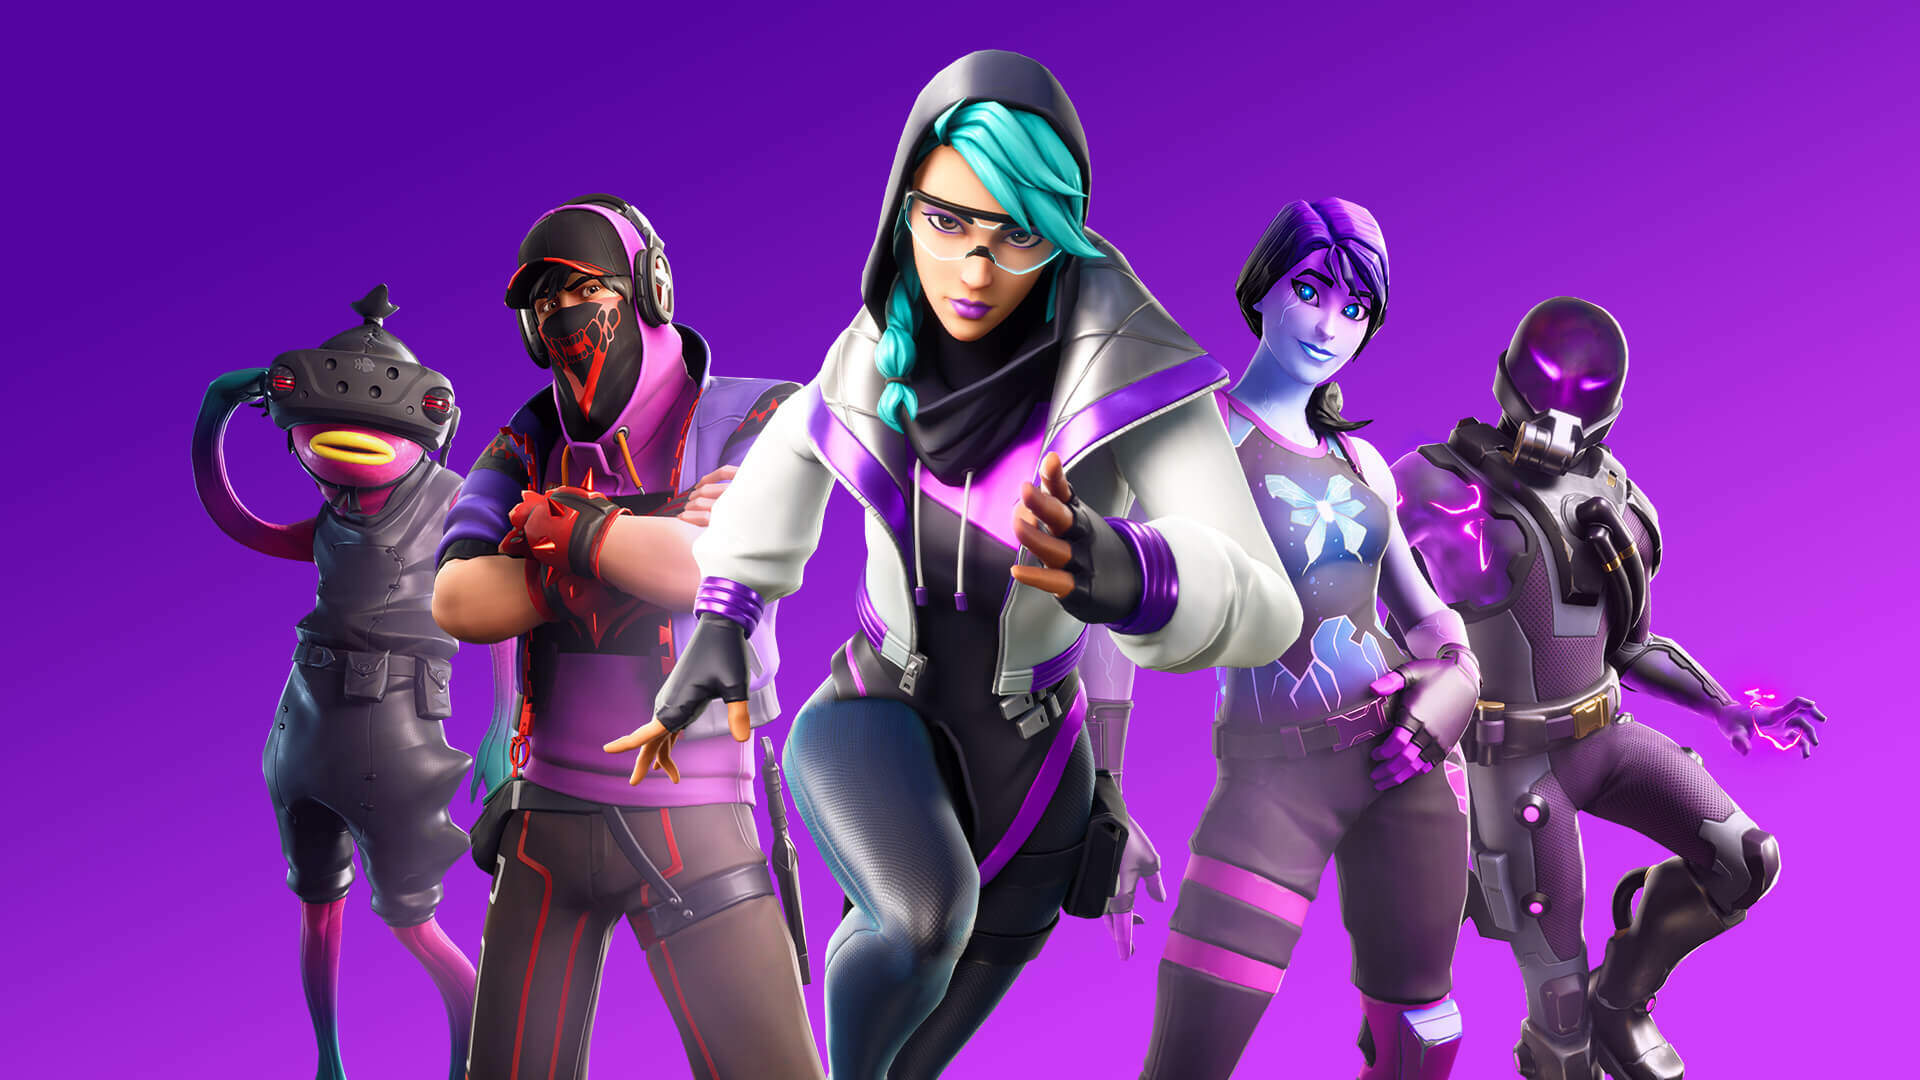 Fortnite Will Be Playable on Next-Gen Consoles at Launch